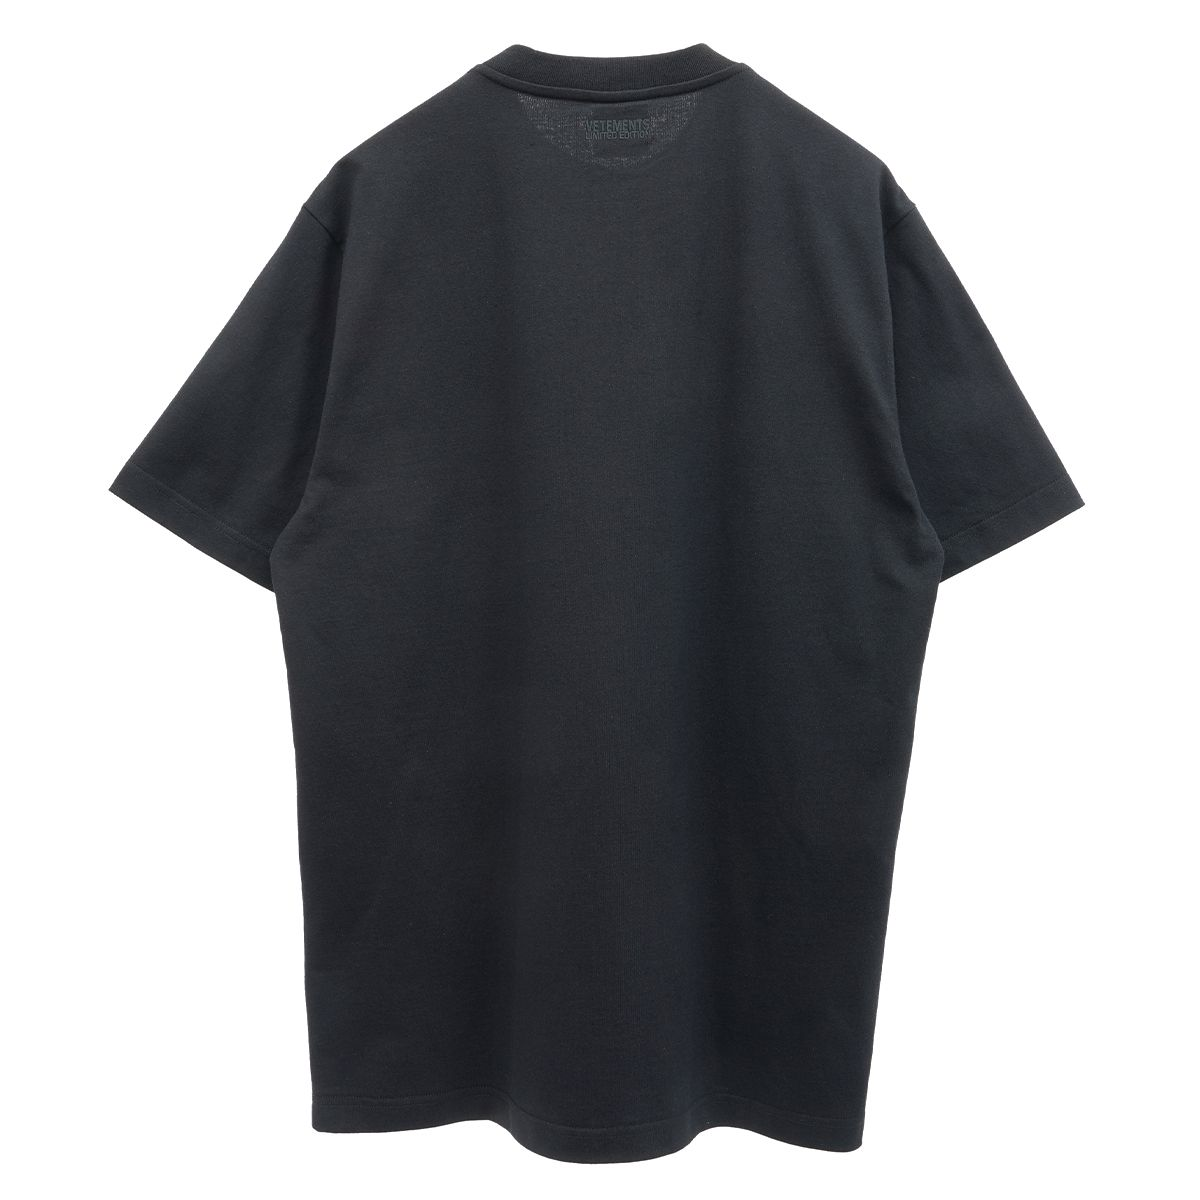 VETEMENTS THE LOGO T-SHIRT / BLACK